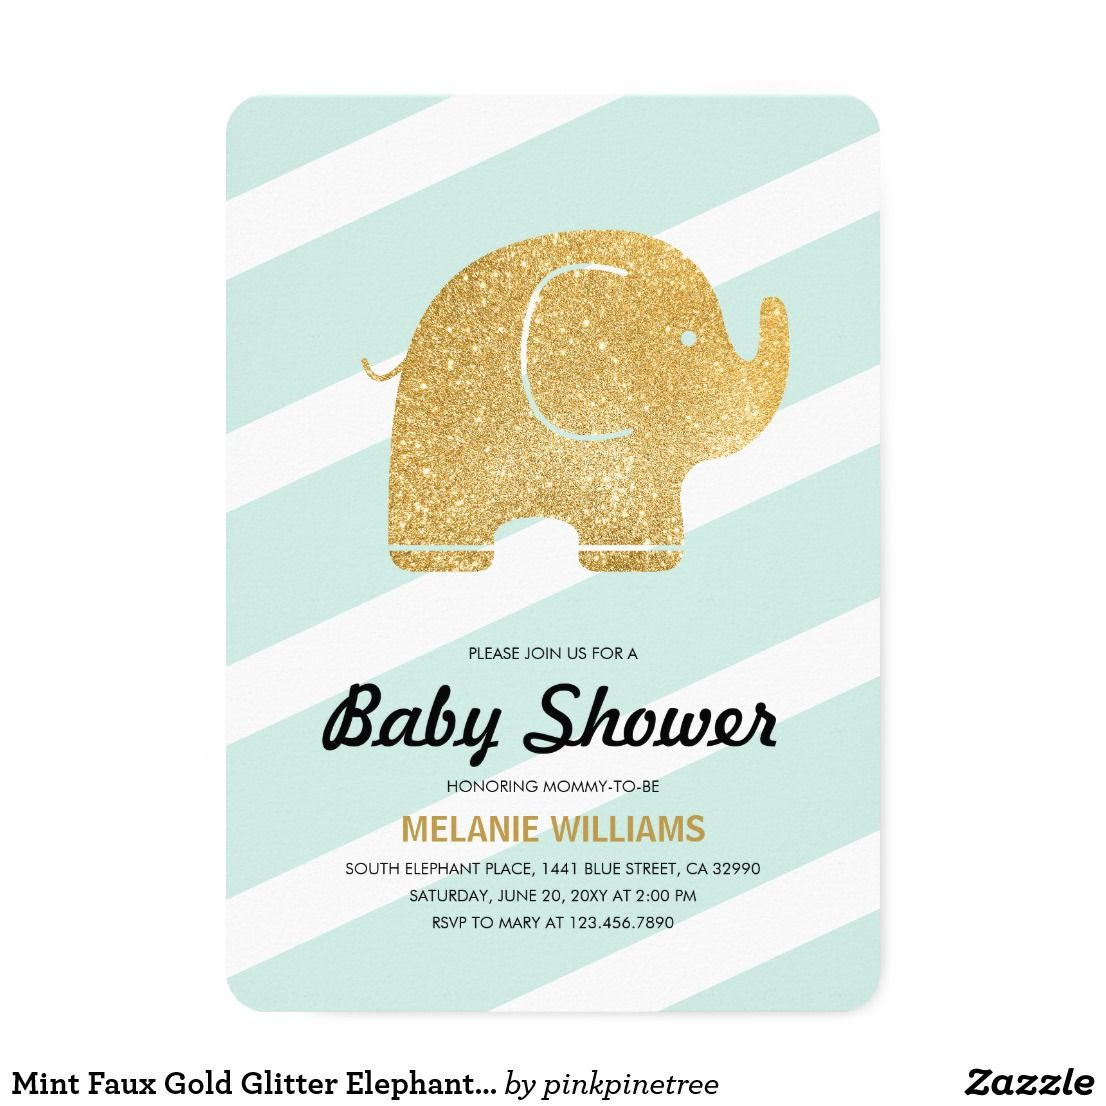 Mint Faux Gold Glitter Elephant Baby Shower Invite Customize this ...